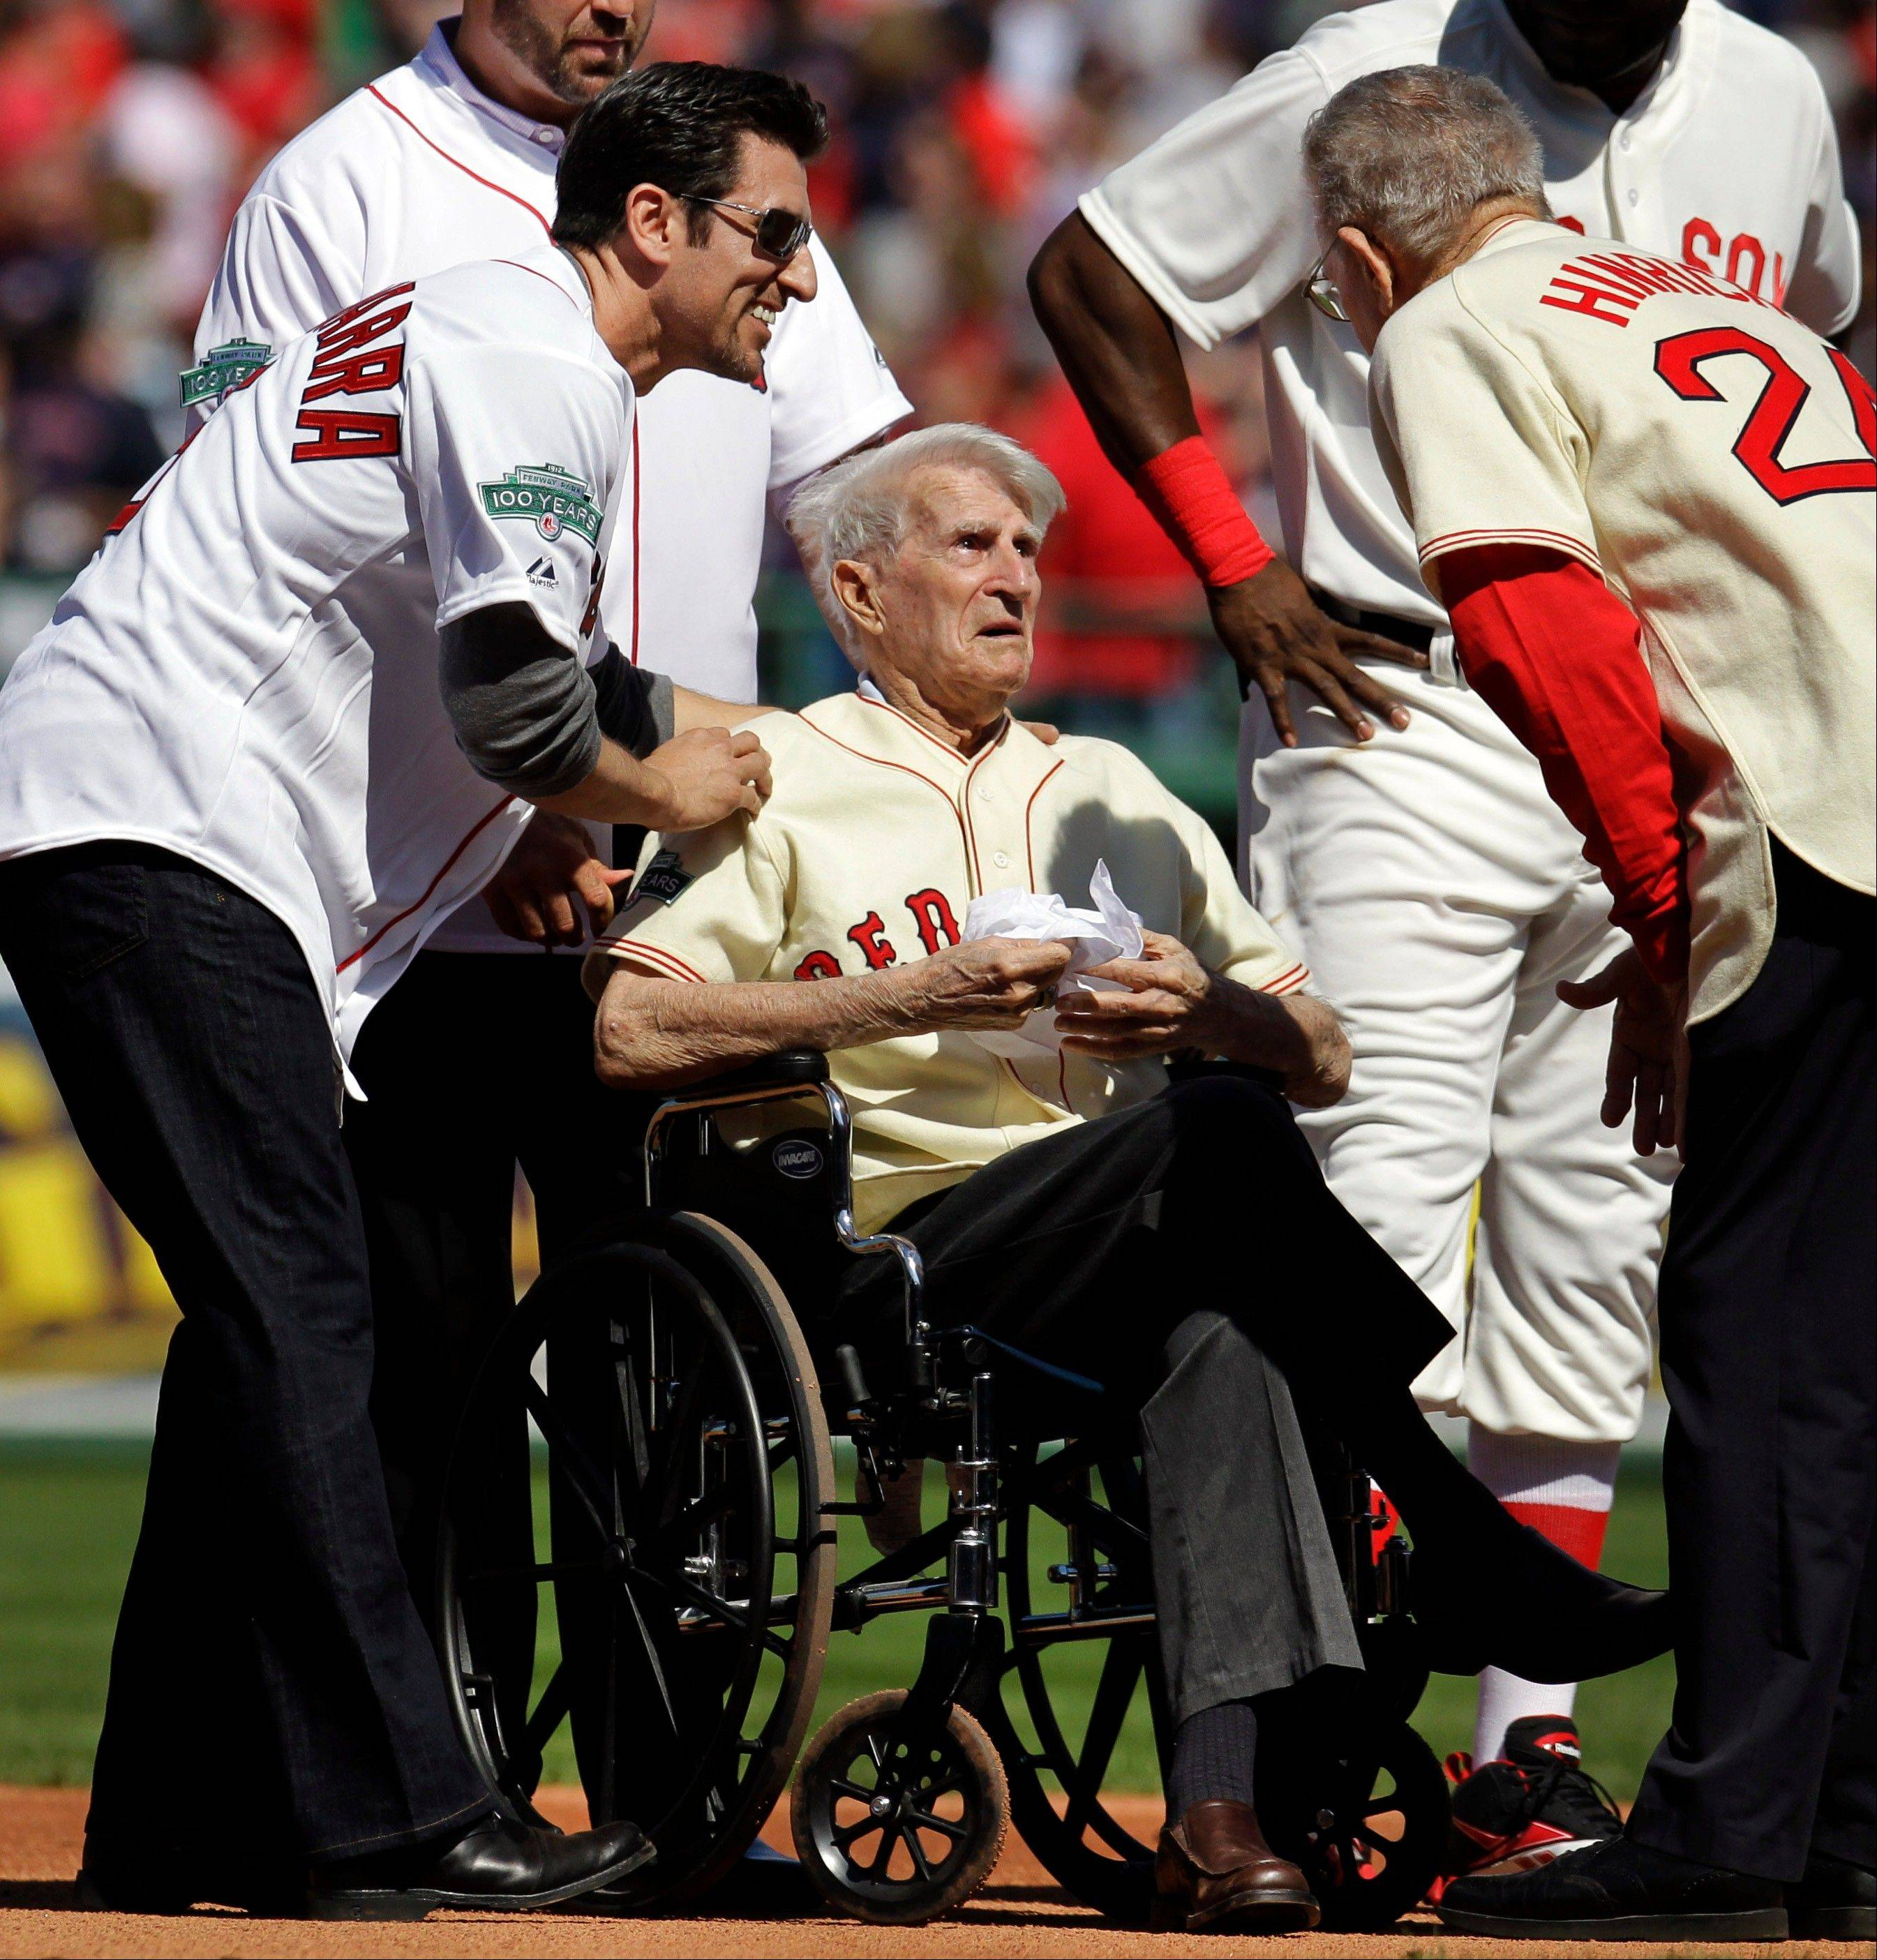 In this April 20, 2012, file photo, Boston Red Sox great Johnny Pesky, center, is greeted by former player Nomar Garciaparra, left, and others during a celebration of the 100th anniversary of the first regular-season baseball game at Fenway Park prior to the Red Sox taking on the New York Yankees in Boston. Pesky, who spent most of his 60-plus years in pro baseball with the Red Sox and was beloved by the team's fans, has died on Monday, Aug. 13, 2012, in Danvers, Mass. He was 92.